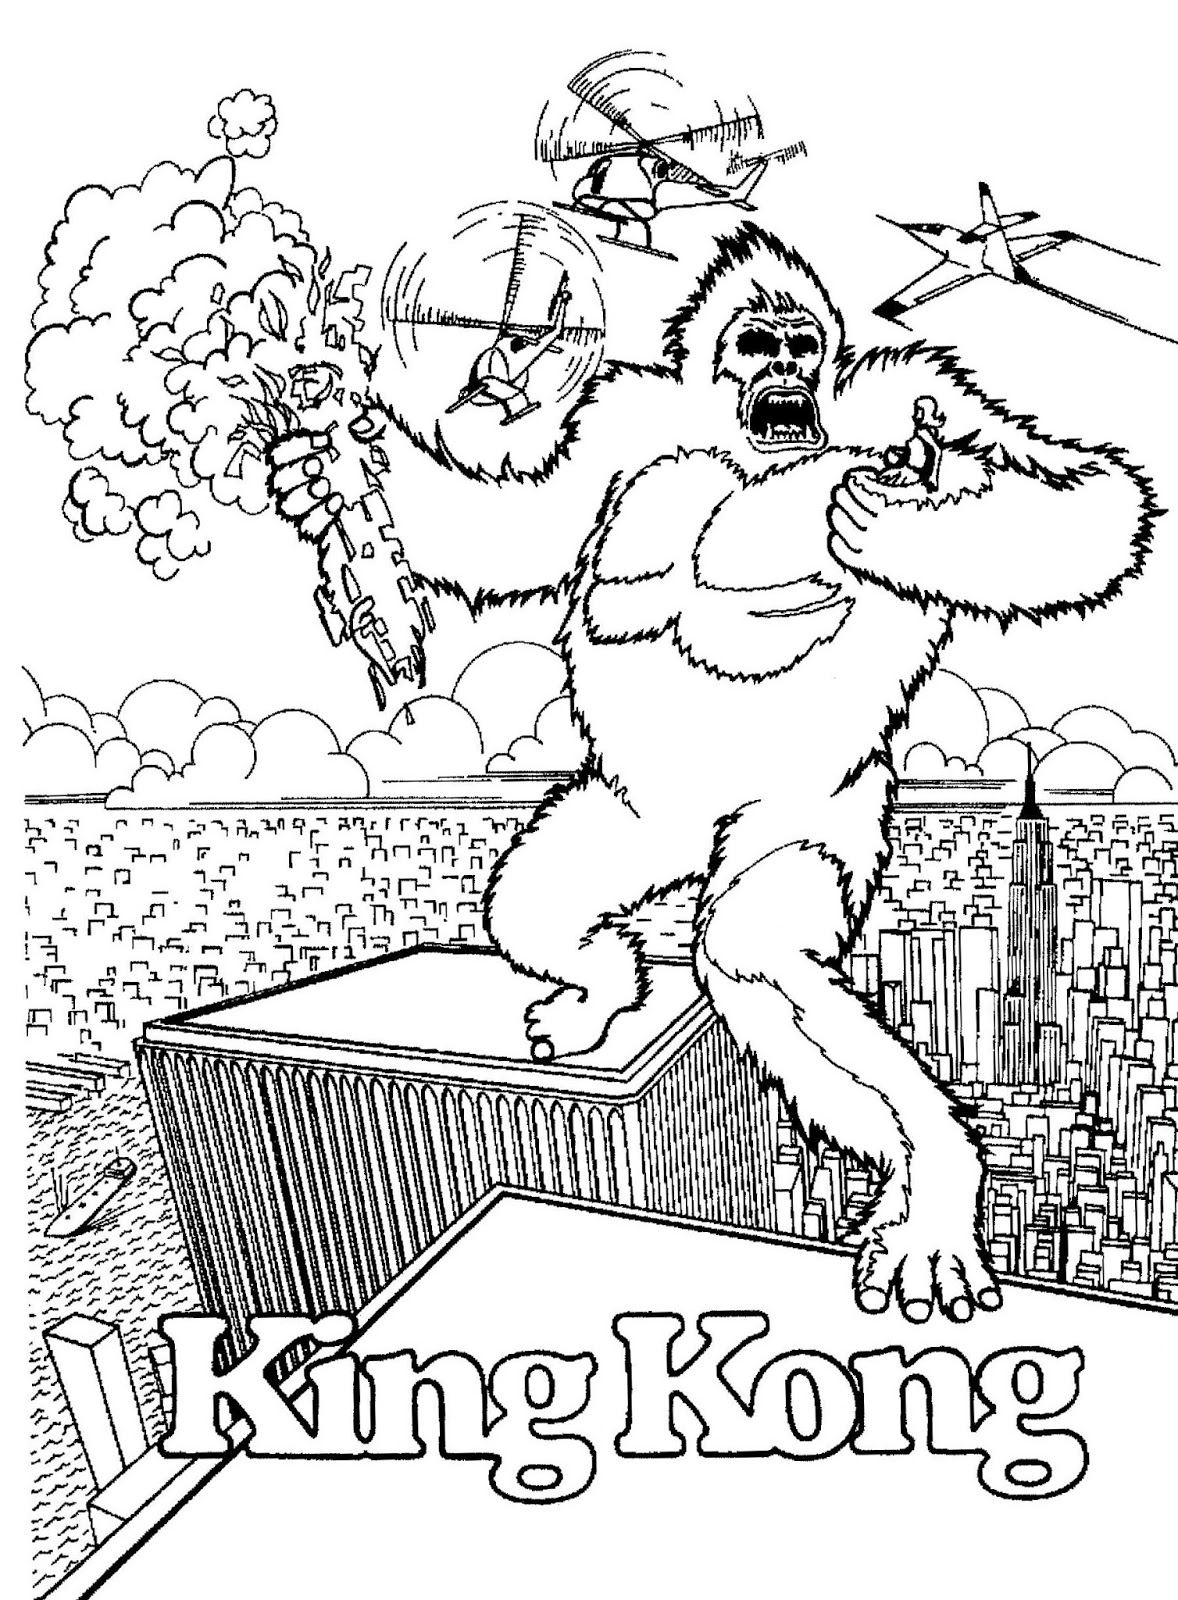 december a movie coloriage contest for king kong starring jeff